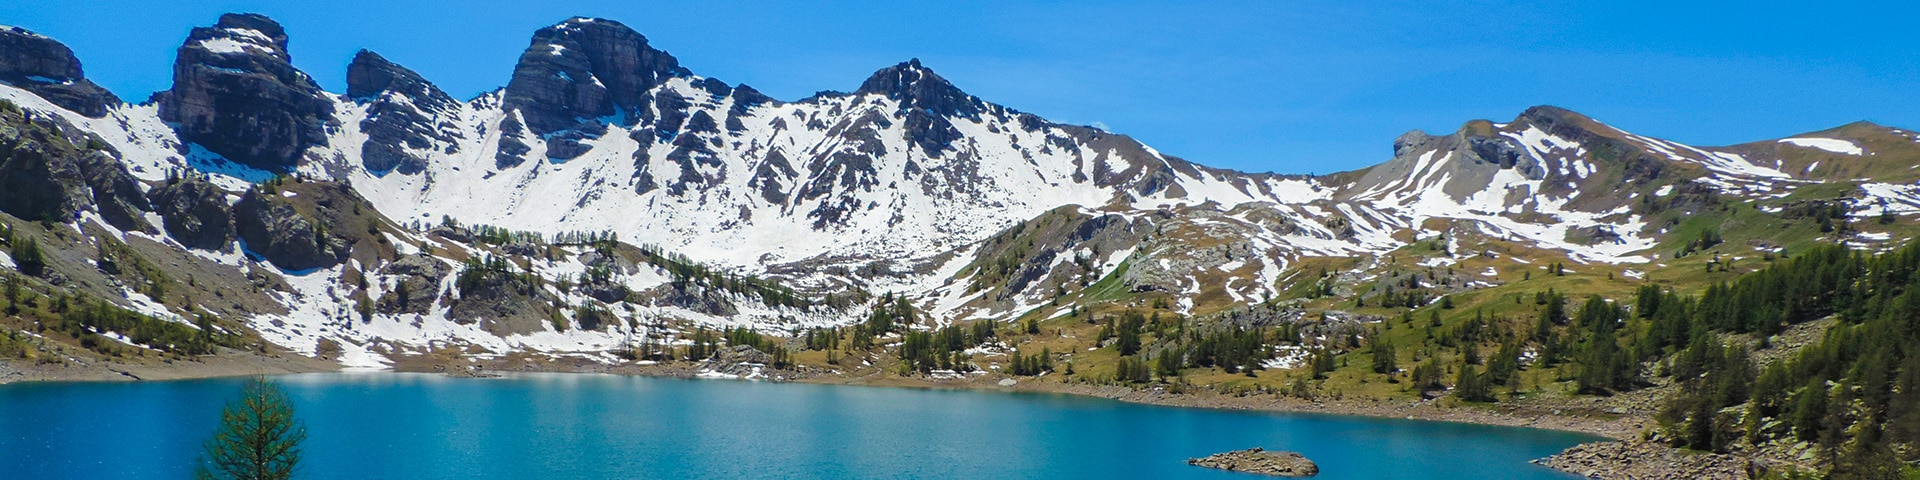 Panorama from the Lac d'Allos hike in Mercantour National Park, France